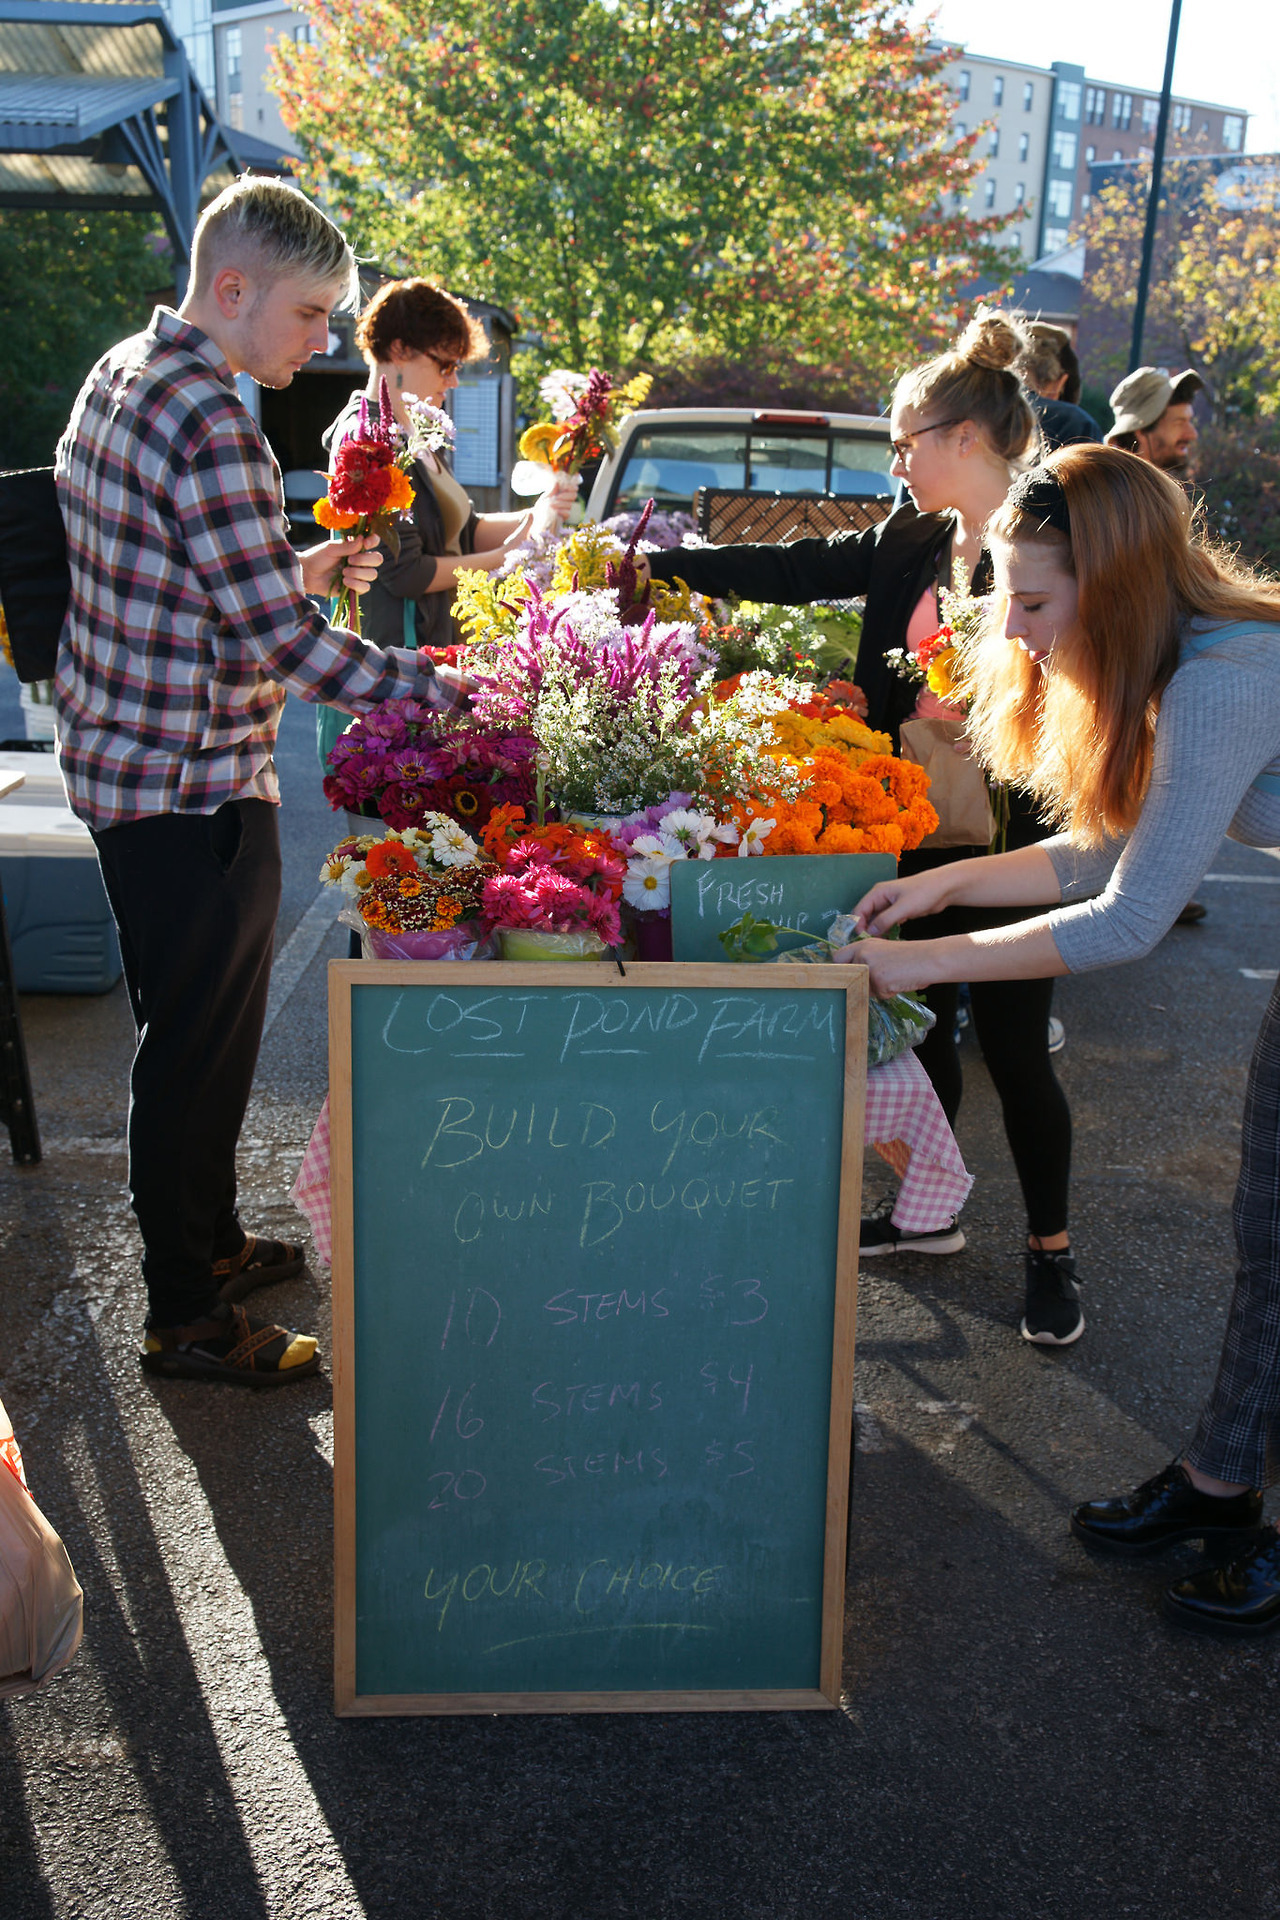 Build Your Own Bouquet at the Bloomington, Indiana Farmers' Market, Fall 2017.